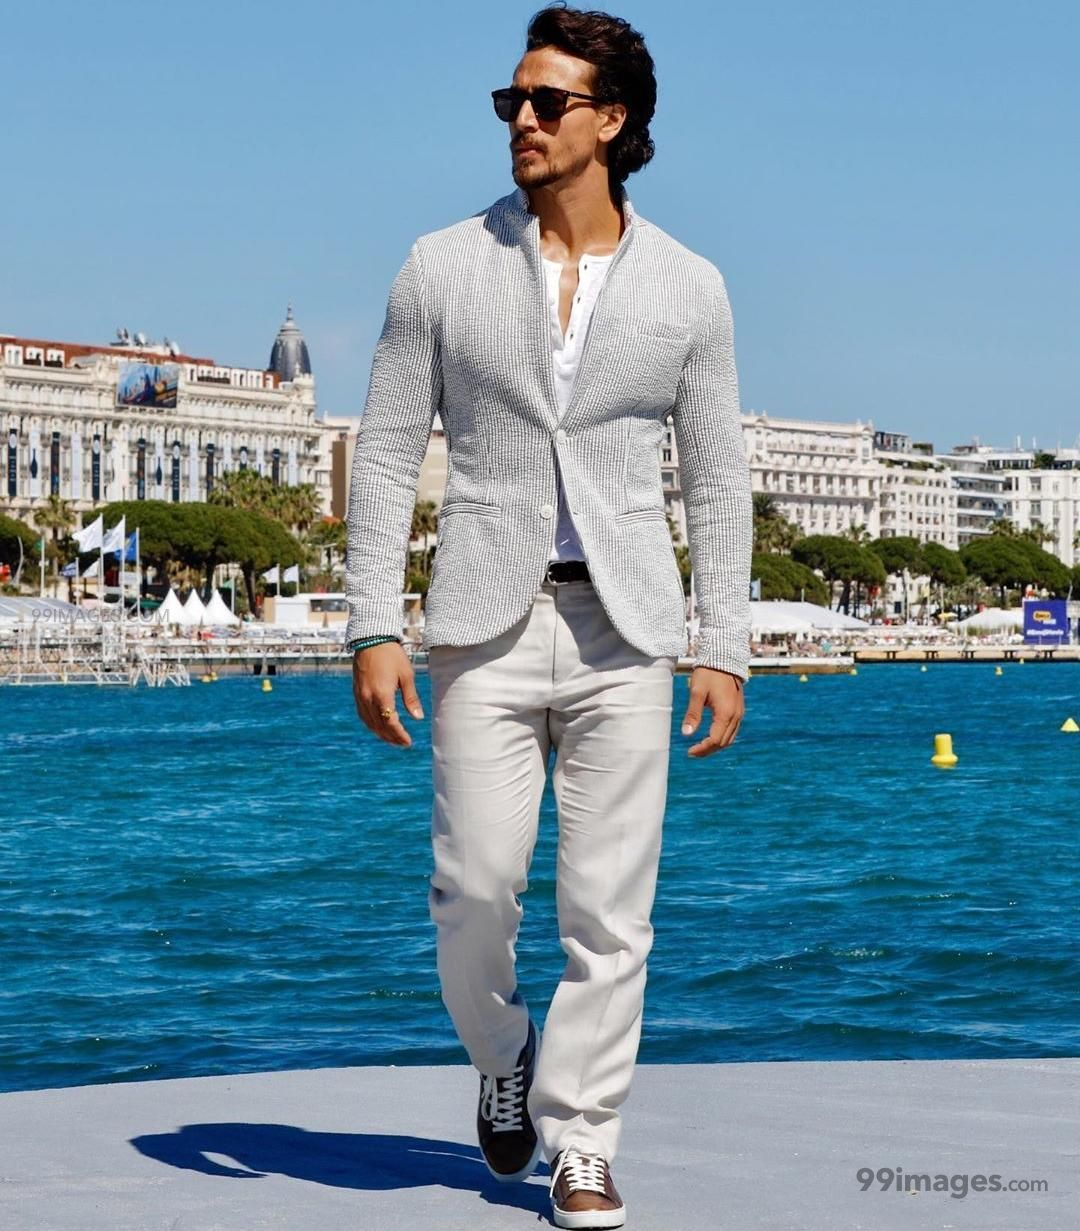 Tiger Shroff HD Wallpapers (Desktop Background / Android / iPhone) (1080p, 4k) (128185) - Tiger Shroff